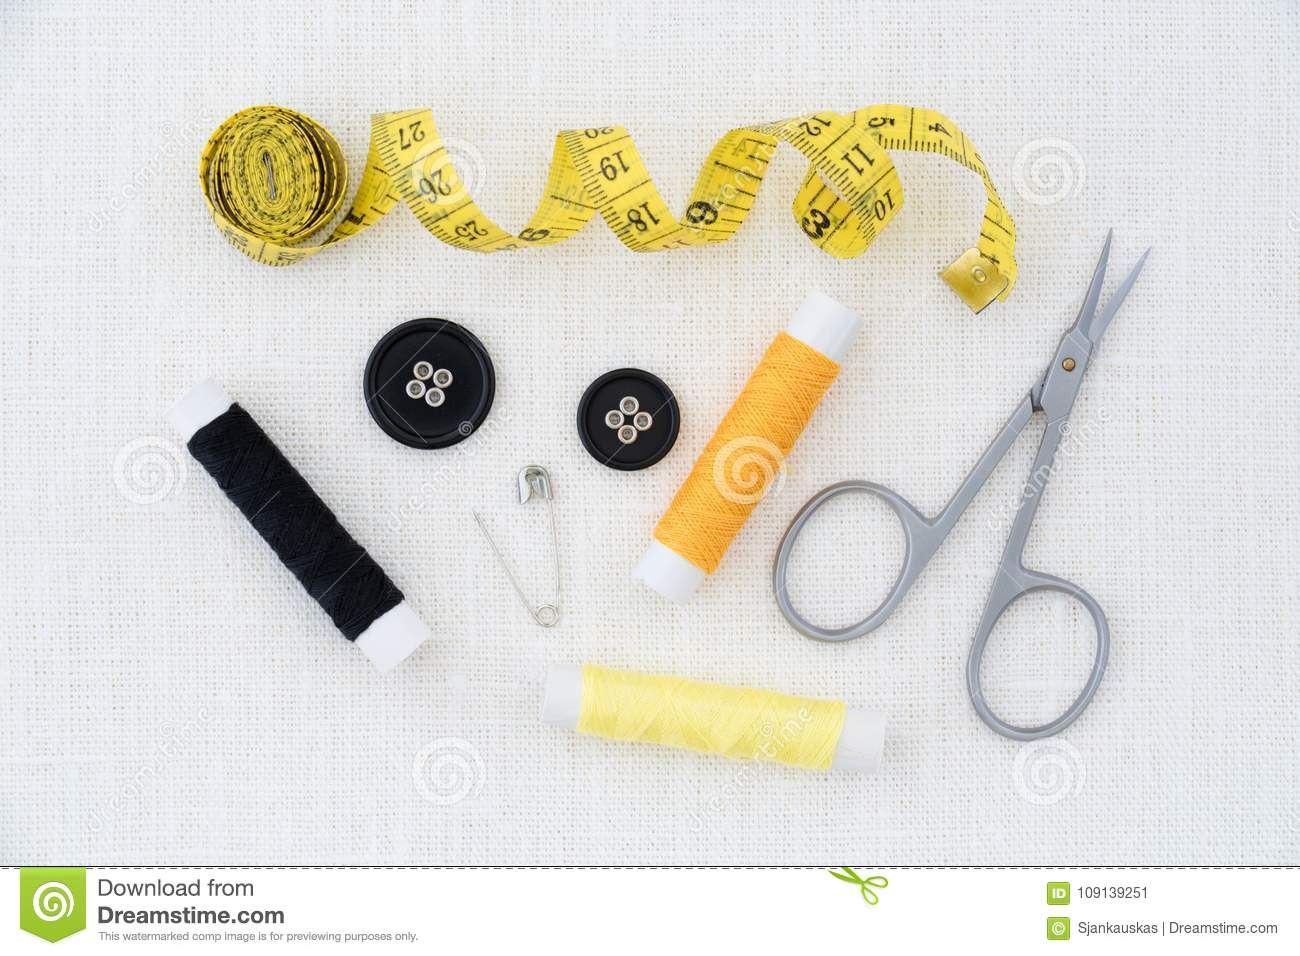 Clothing Design Tools | Sewing Tools Clothing Design Concept Stock Image Image Of Sewing